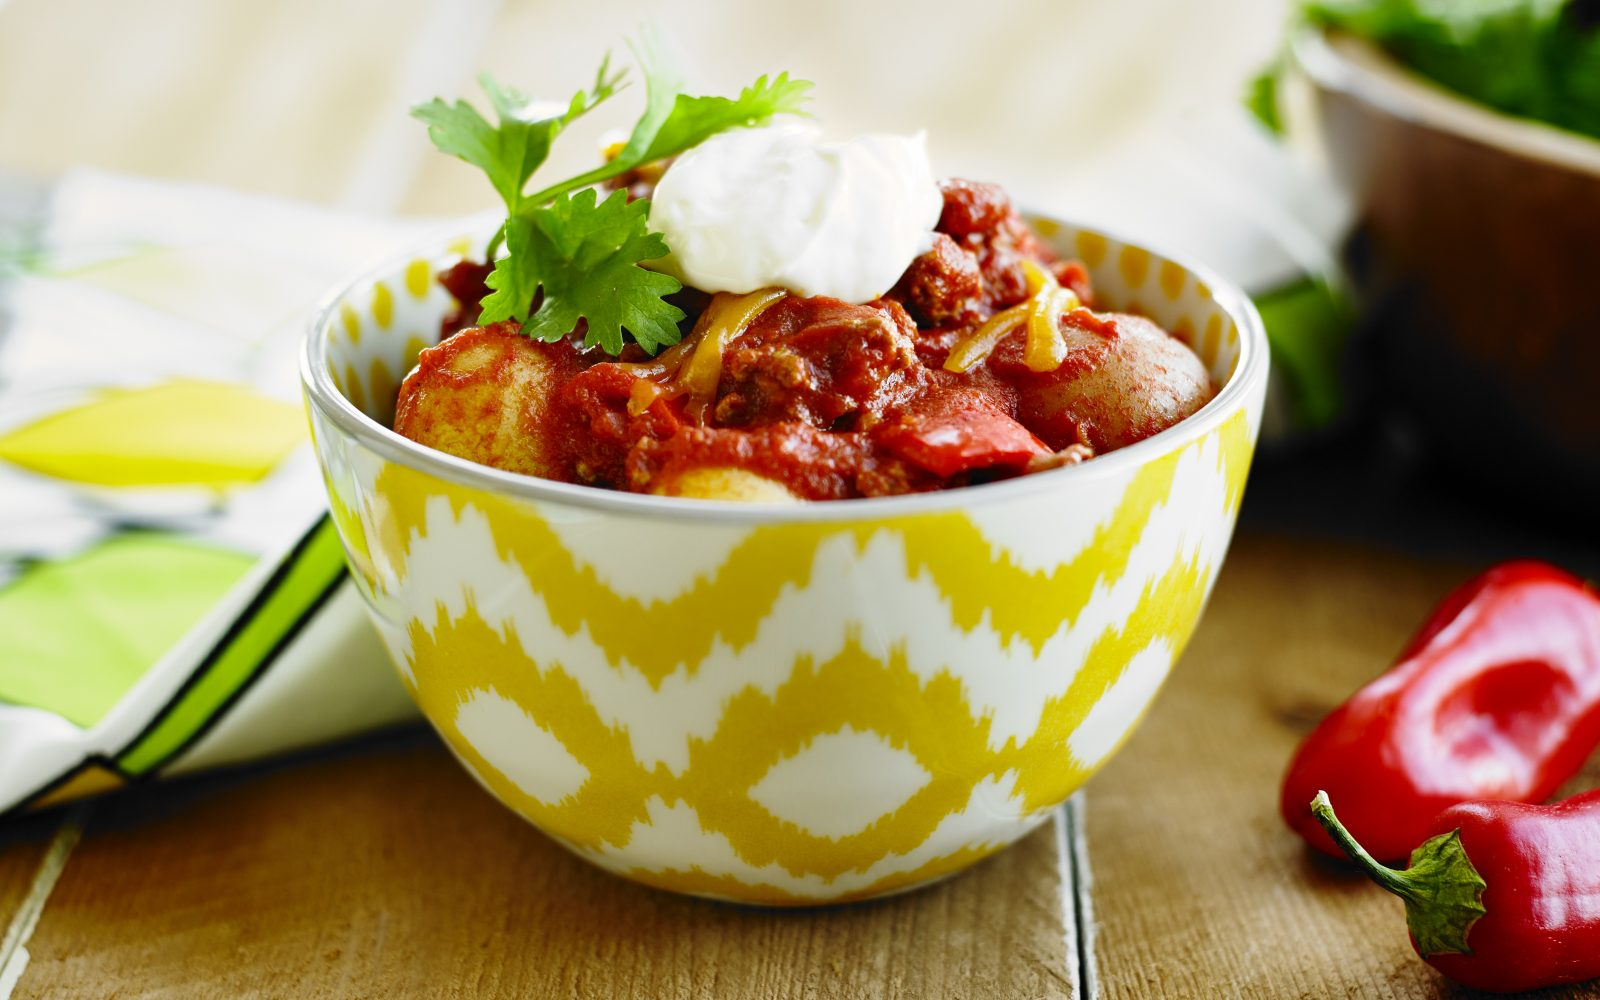 Macho Sombrero Chili Con Carne with Potatoes